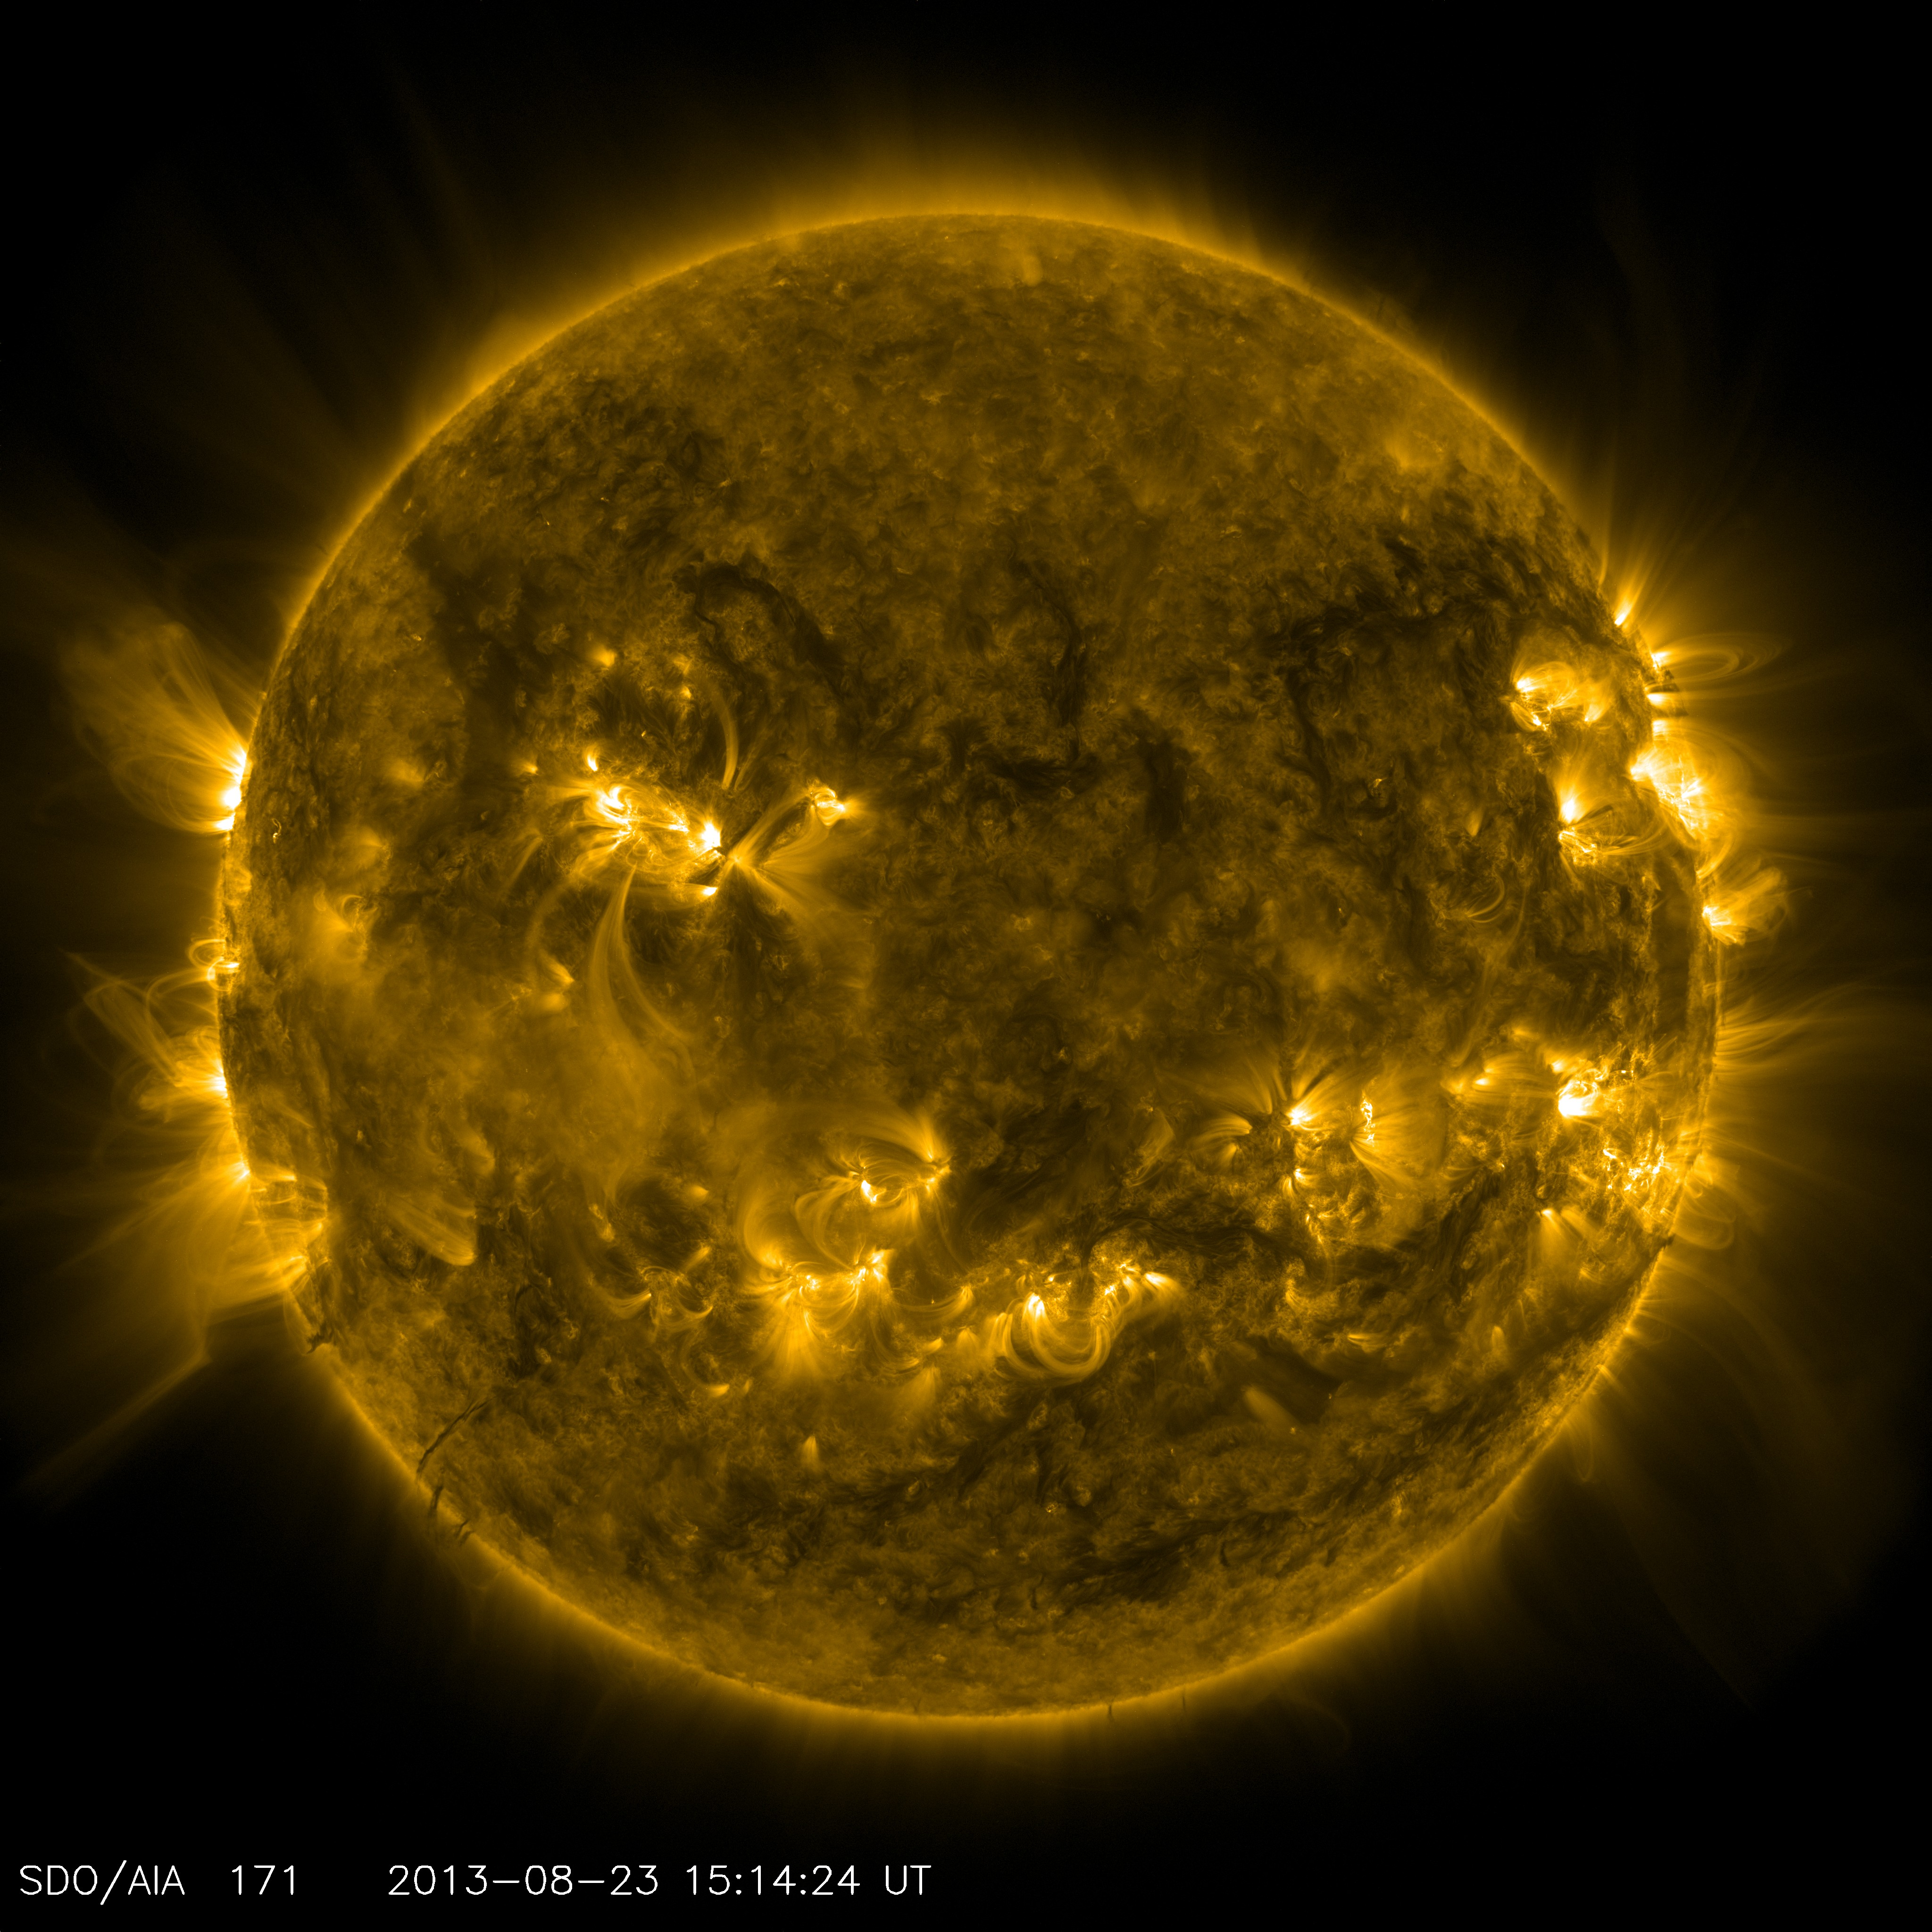 This channel is particularly good at showing coronal loops -- the arcs extending off the sun where plasma moves along magnetic field lines. The brightest spots seen here are places where the magnetic field near the surface is exceptionally strong.